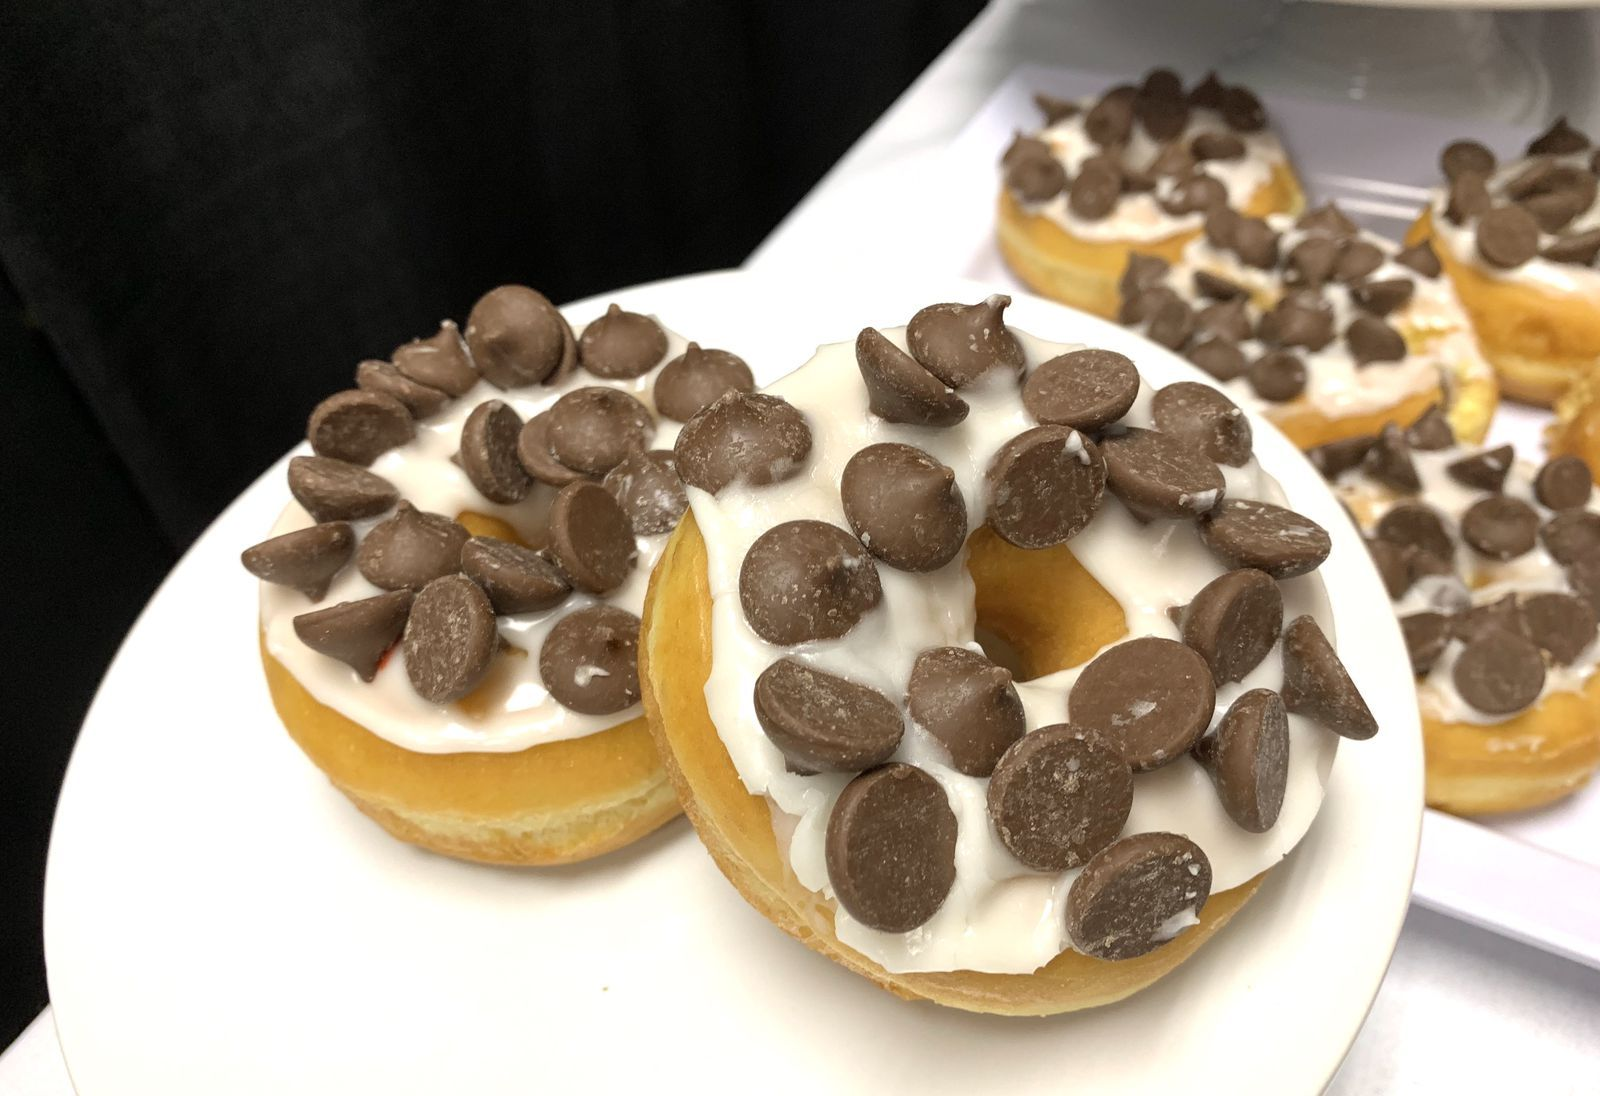 Dunkin's New Holiday Donut Is Covered In Mini Hershey's